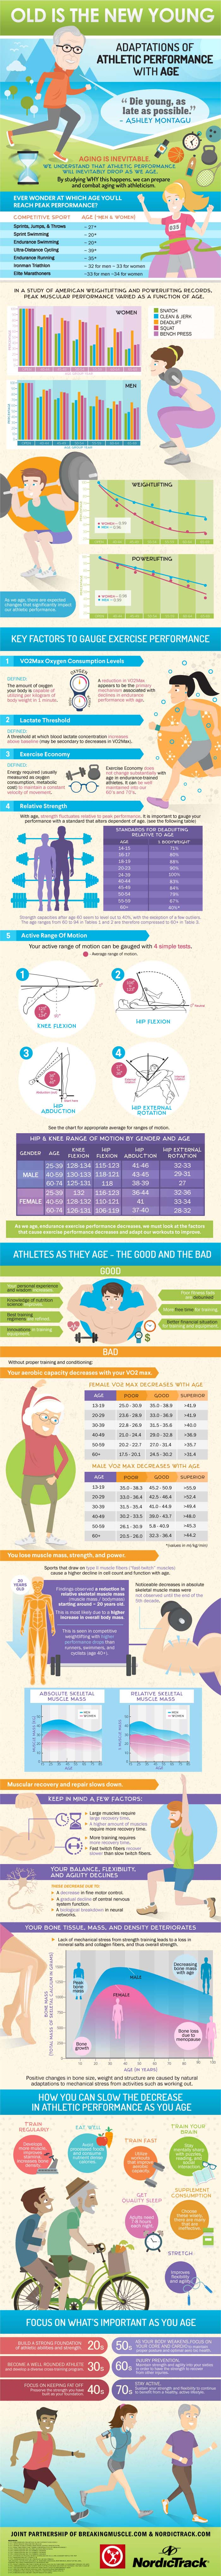 Old is the New Young: Adaptions for Athletic Performance with Age